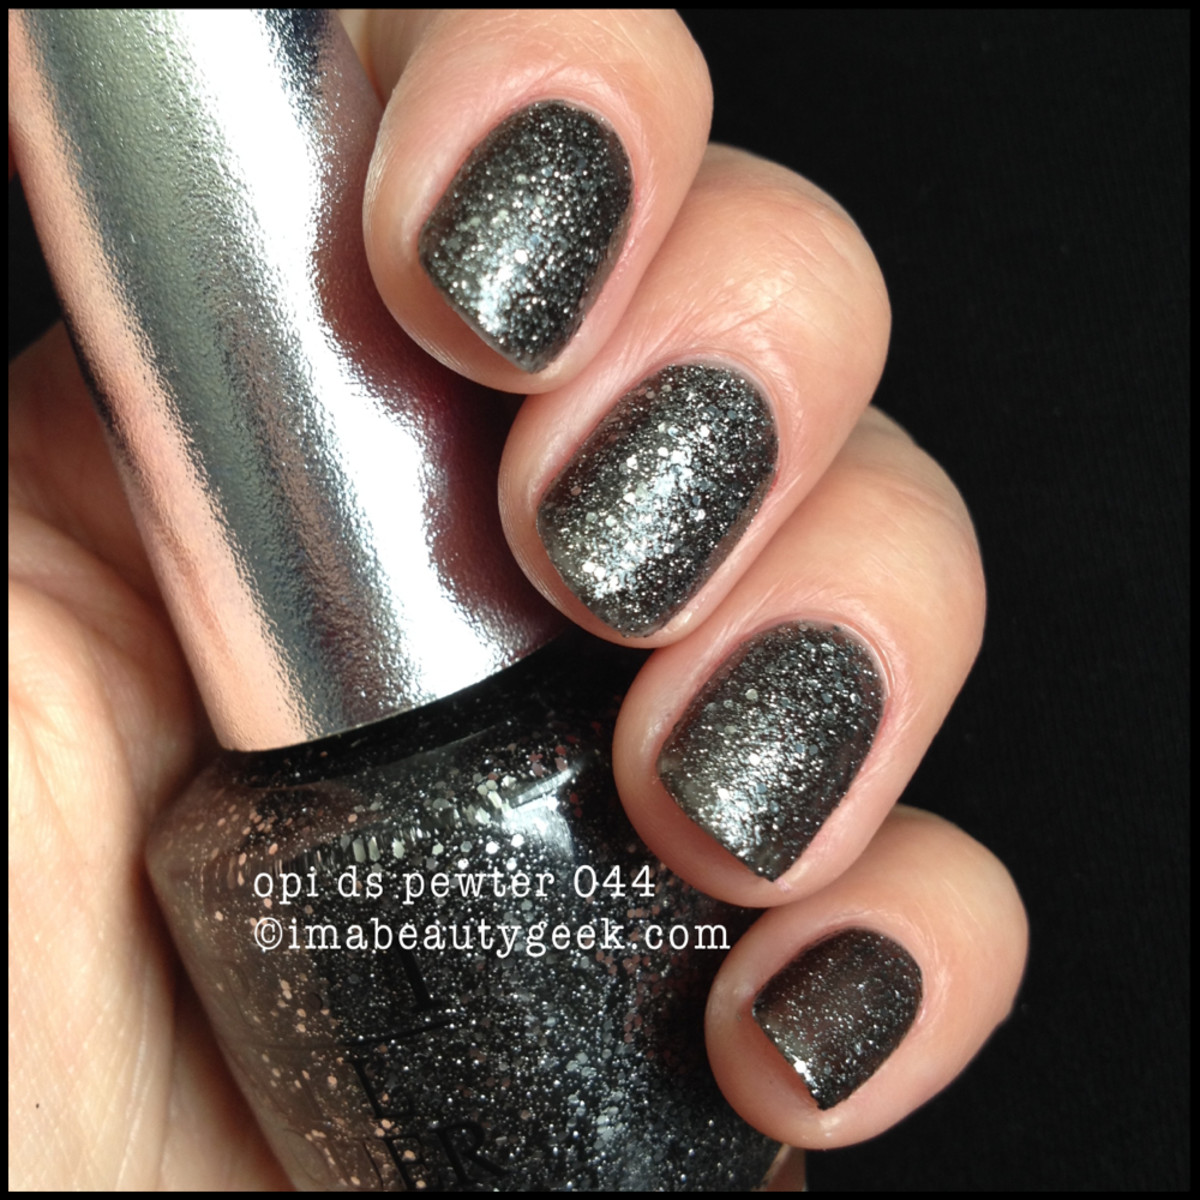 OPI Pewter Ds 044